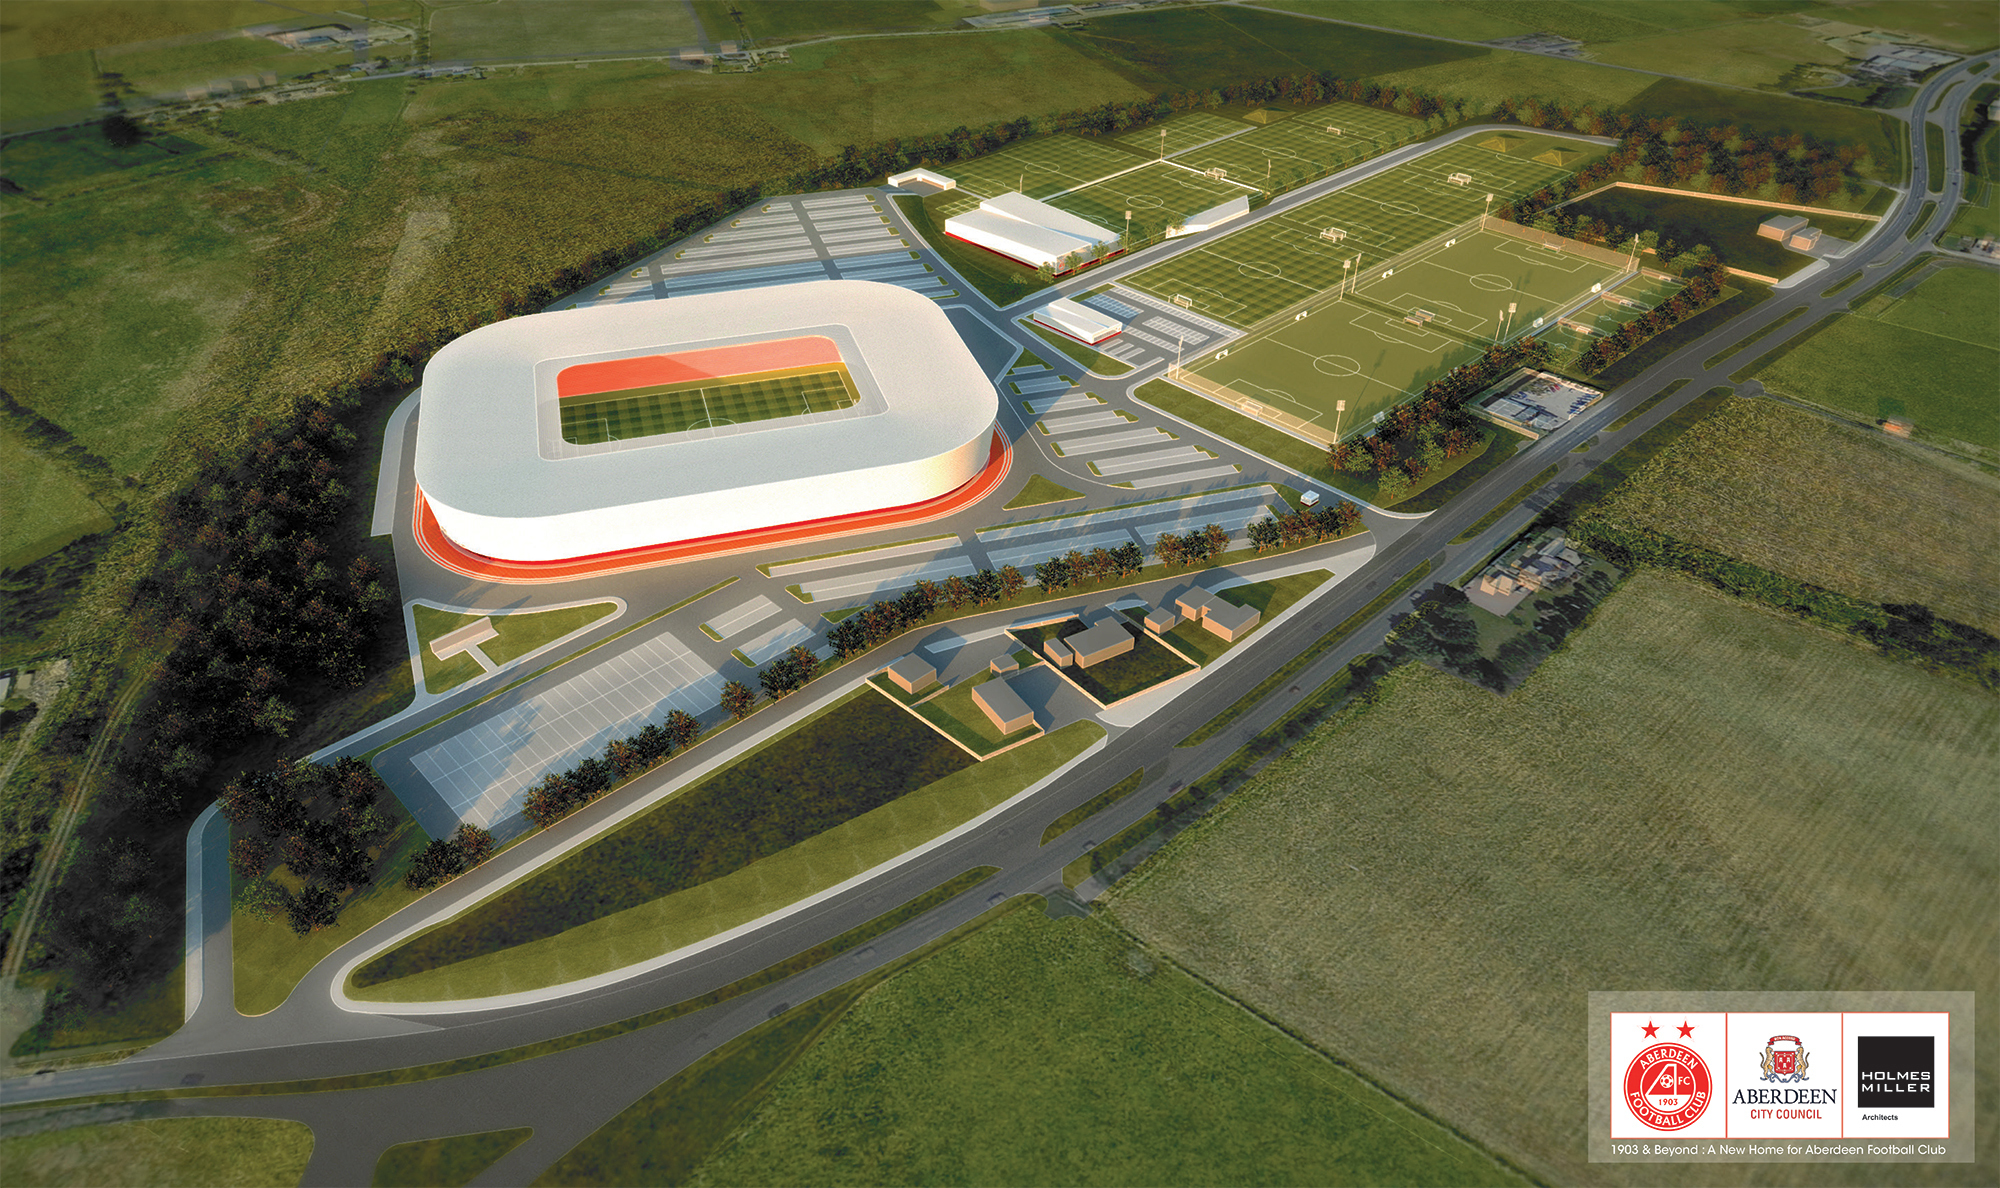 Aberdeen FC are set to move from Pittodrie to a new purpose-built facility.